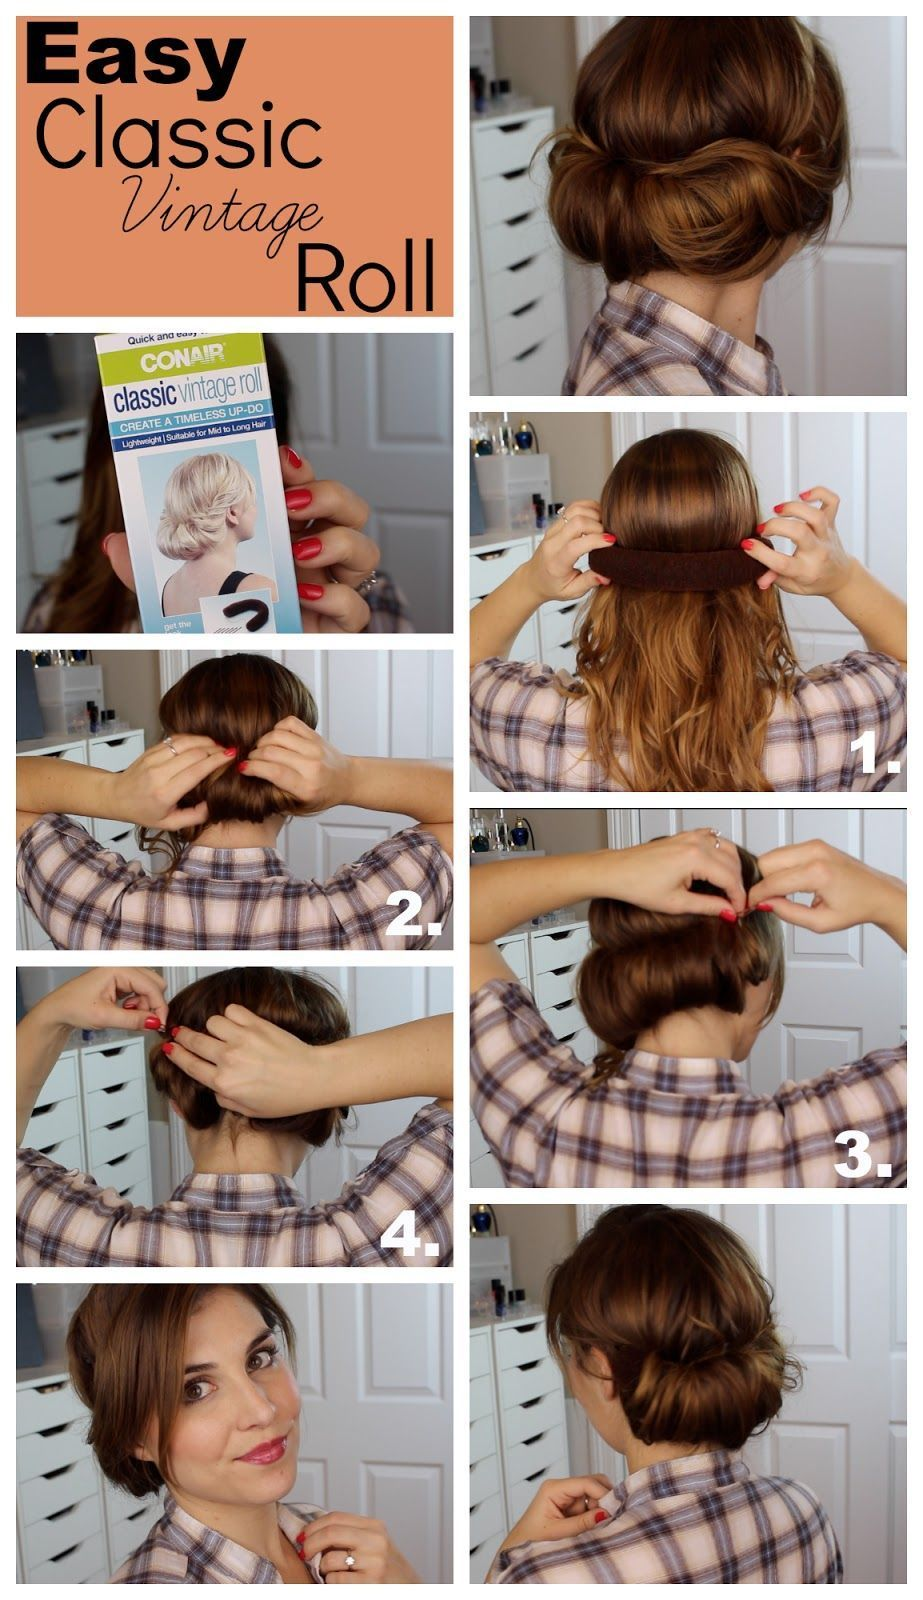 17 Sumptuous Side Simple Vintage Hairstyles Haircuts To Please Any Taste Haircuts Hairstyles Please Simple Hair Styles Short Hair Styles Long Hair Styles